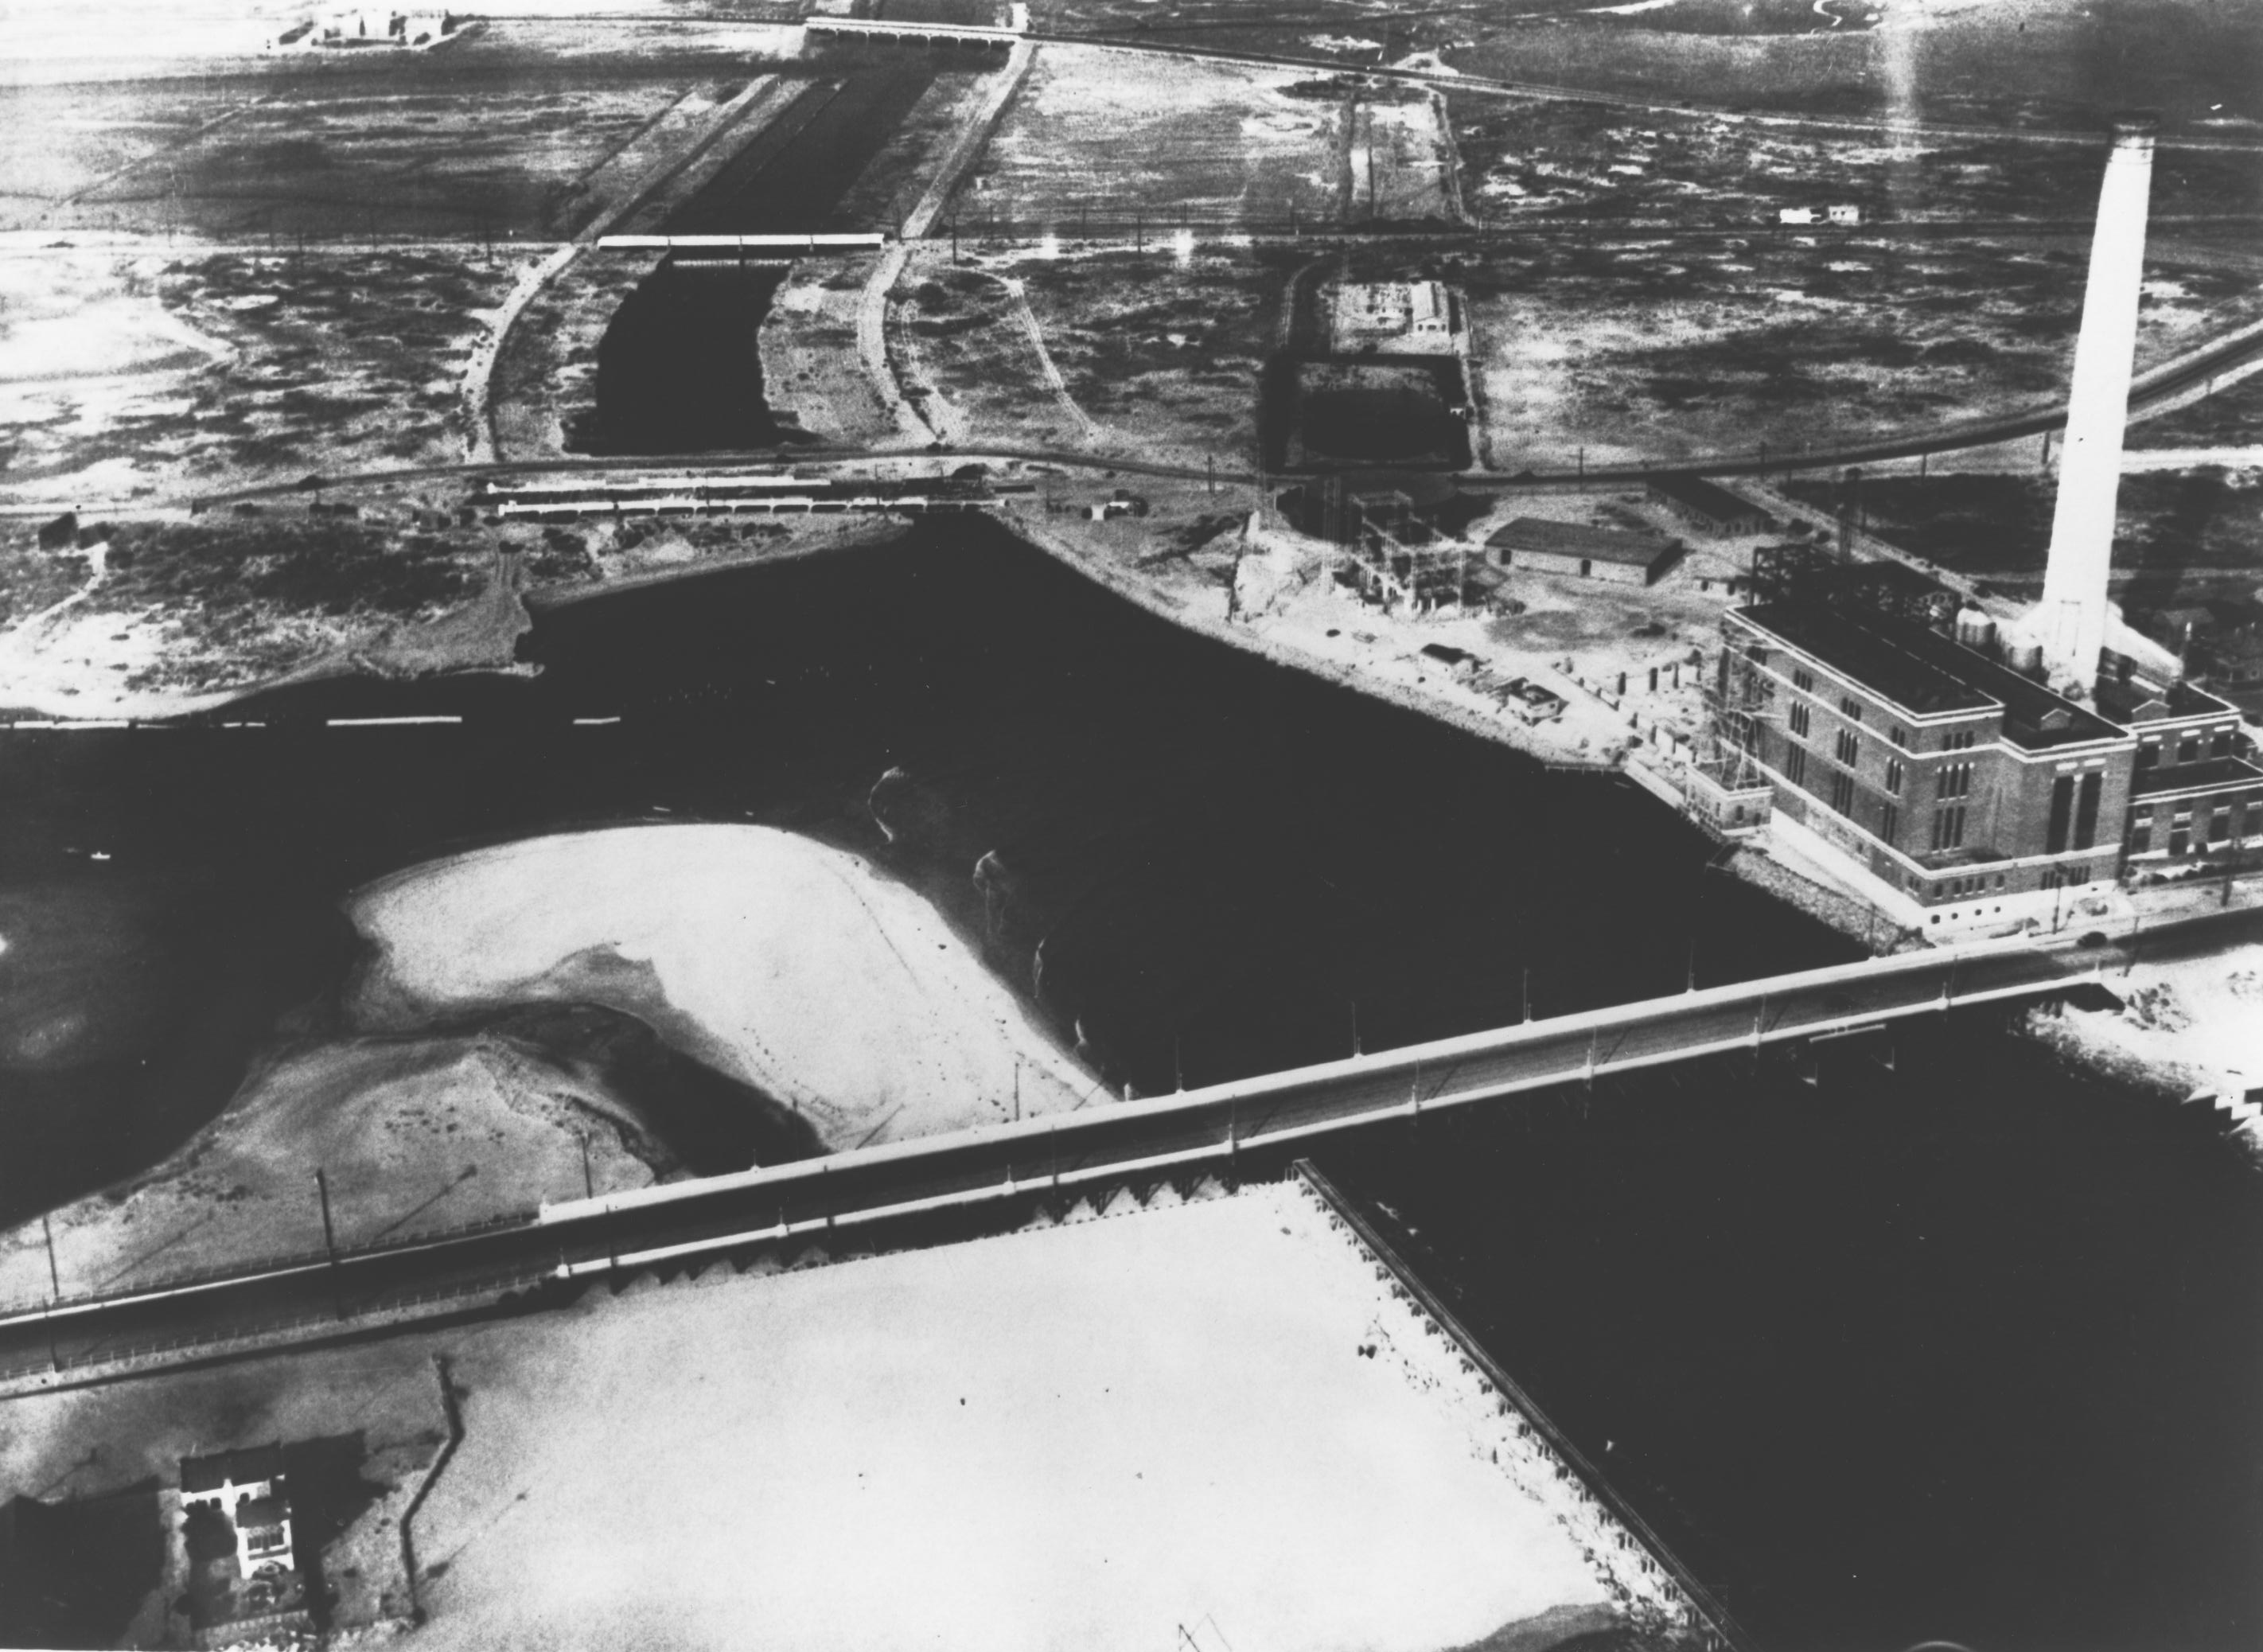 [Image: 1933-09-14-seal-beach-historical-aerial-views-0221.jpg]